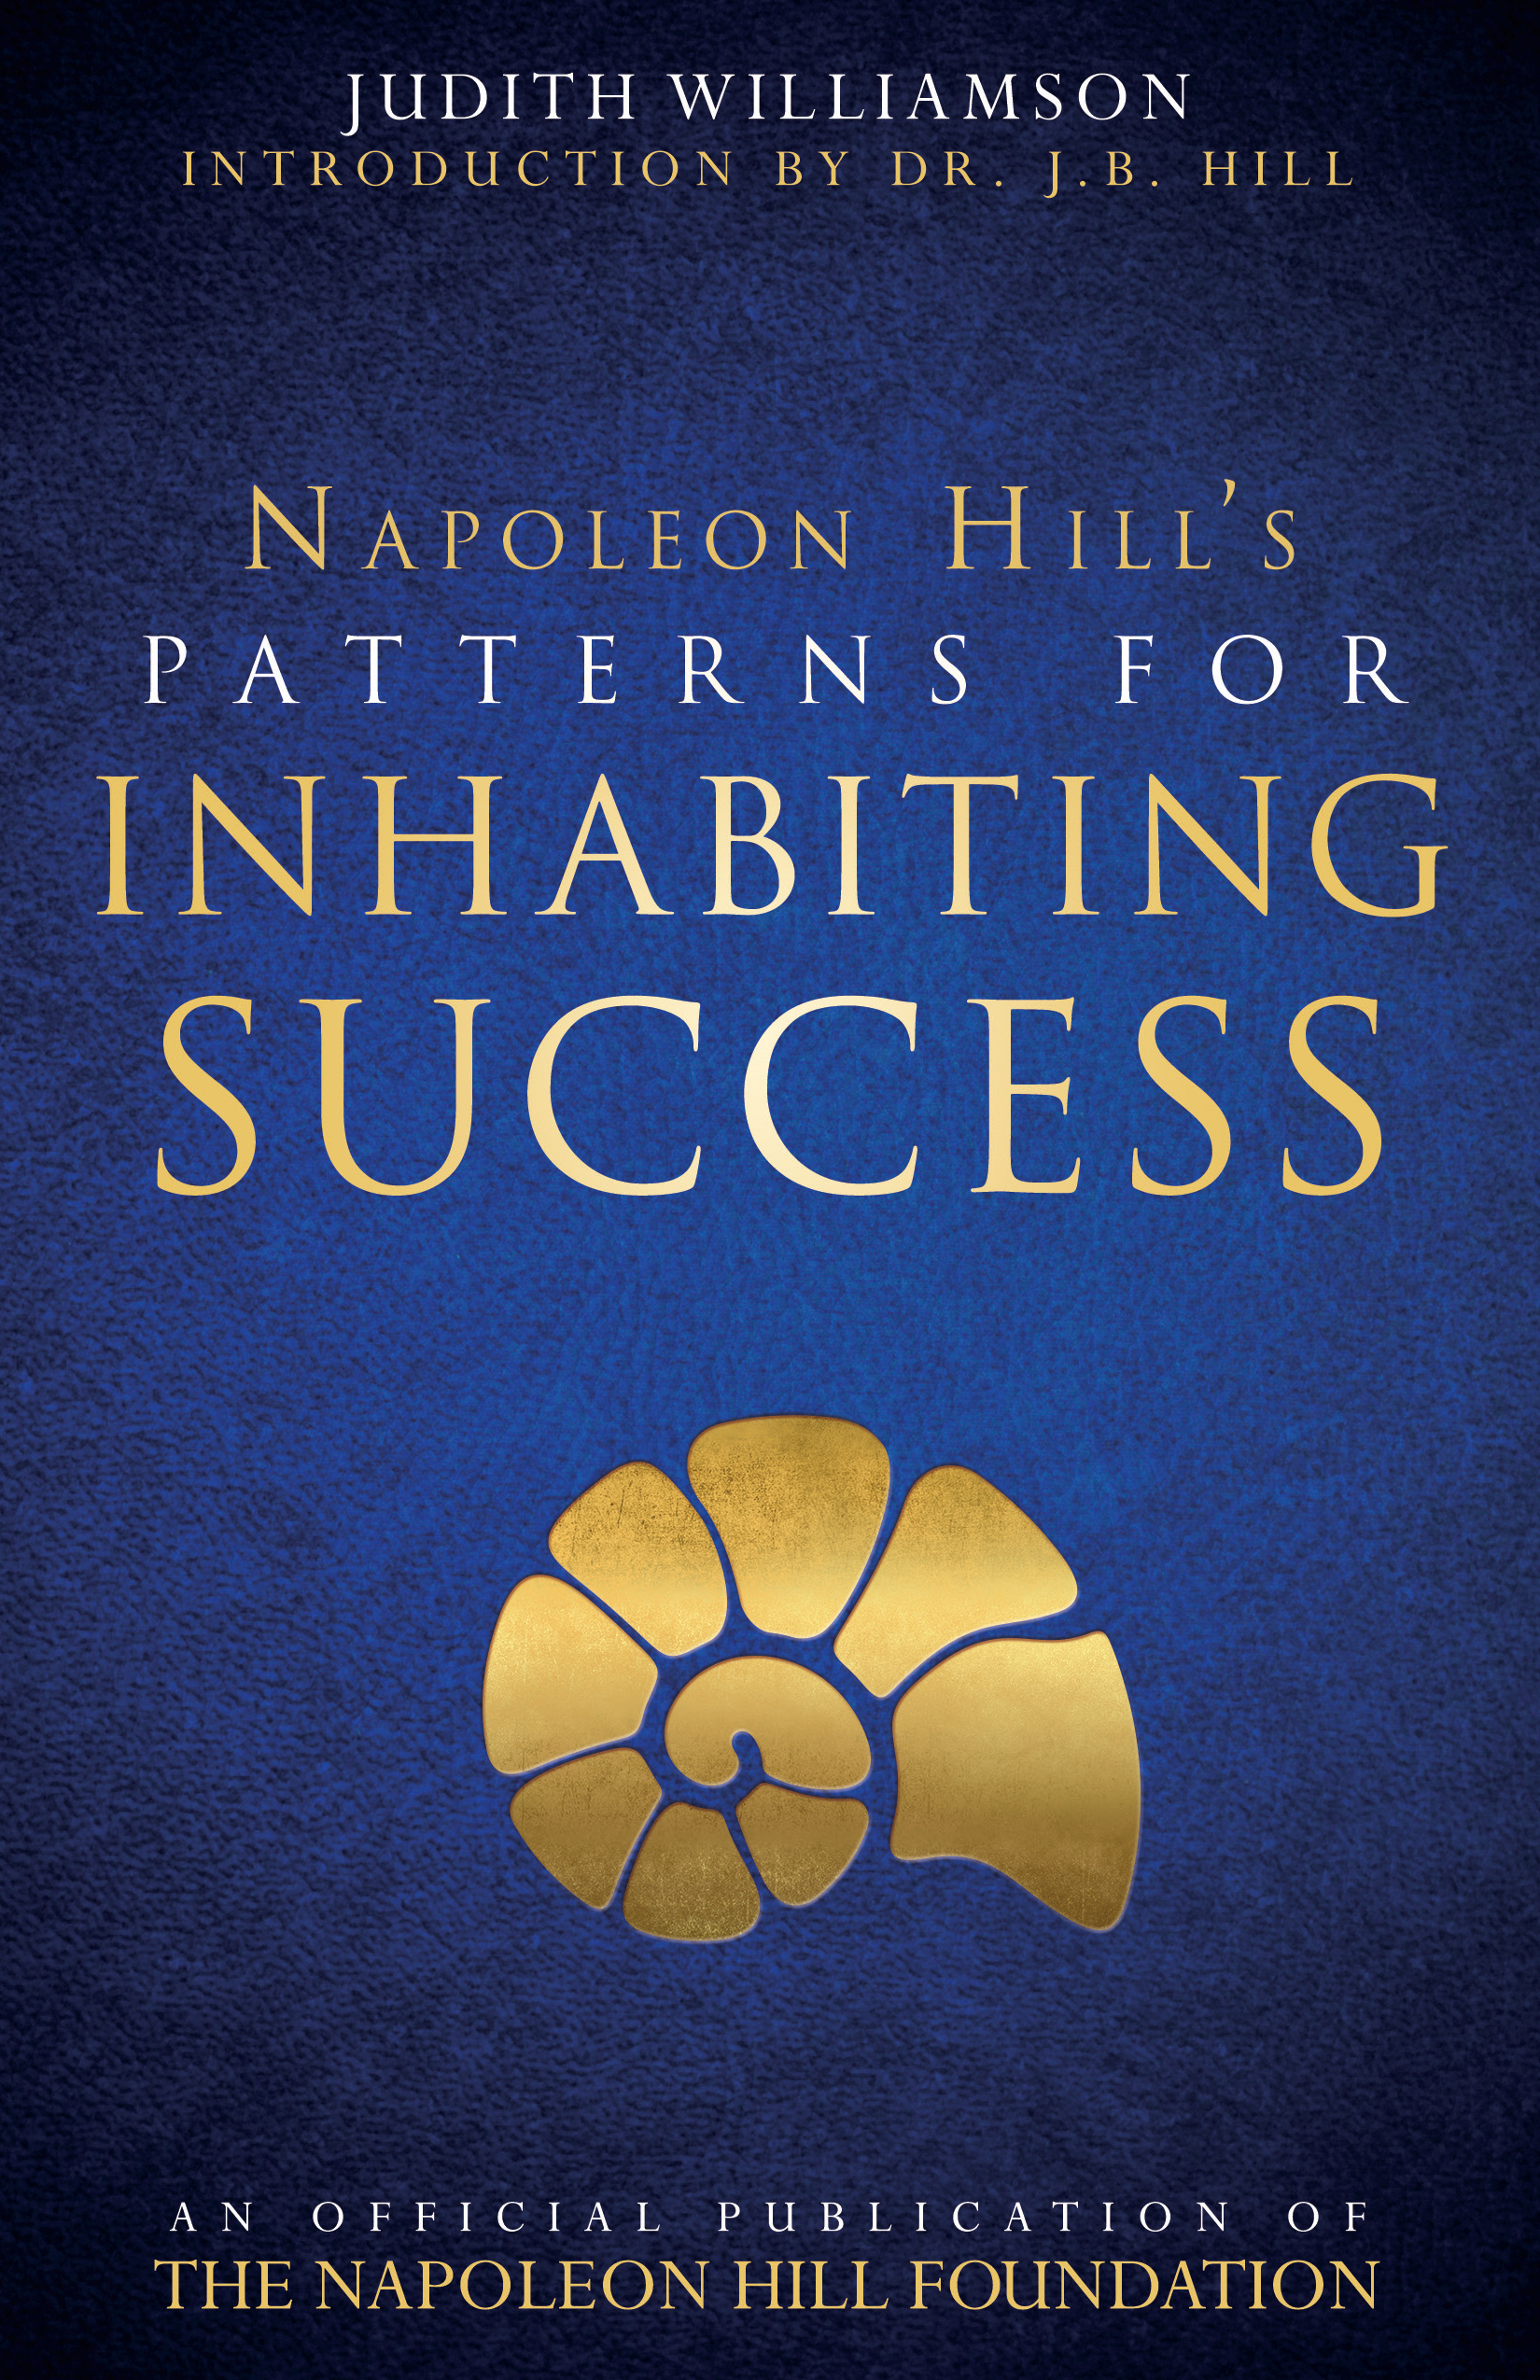 Patterns for Inhabiting Success - By Napoleon Hill